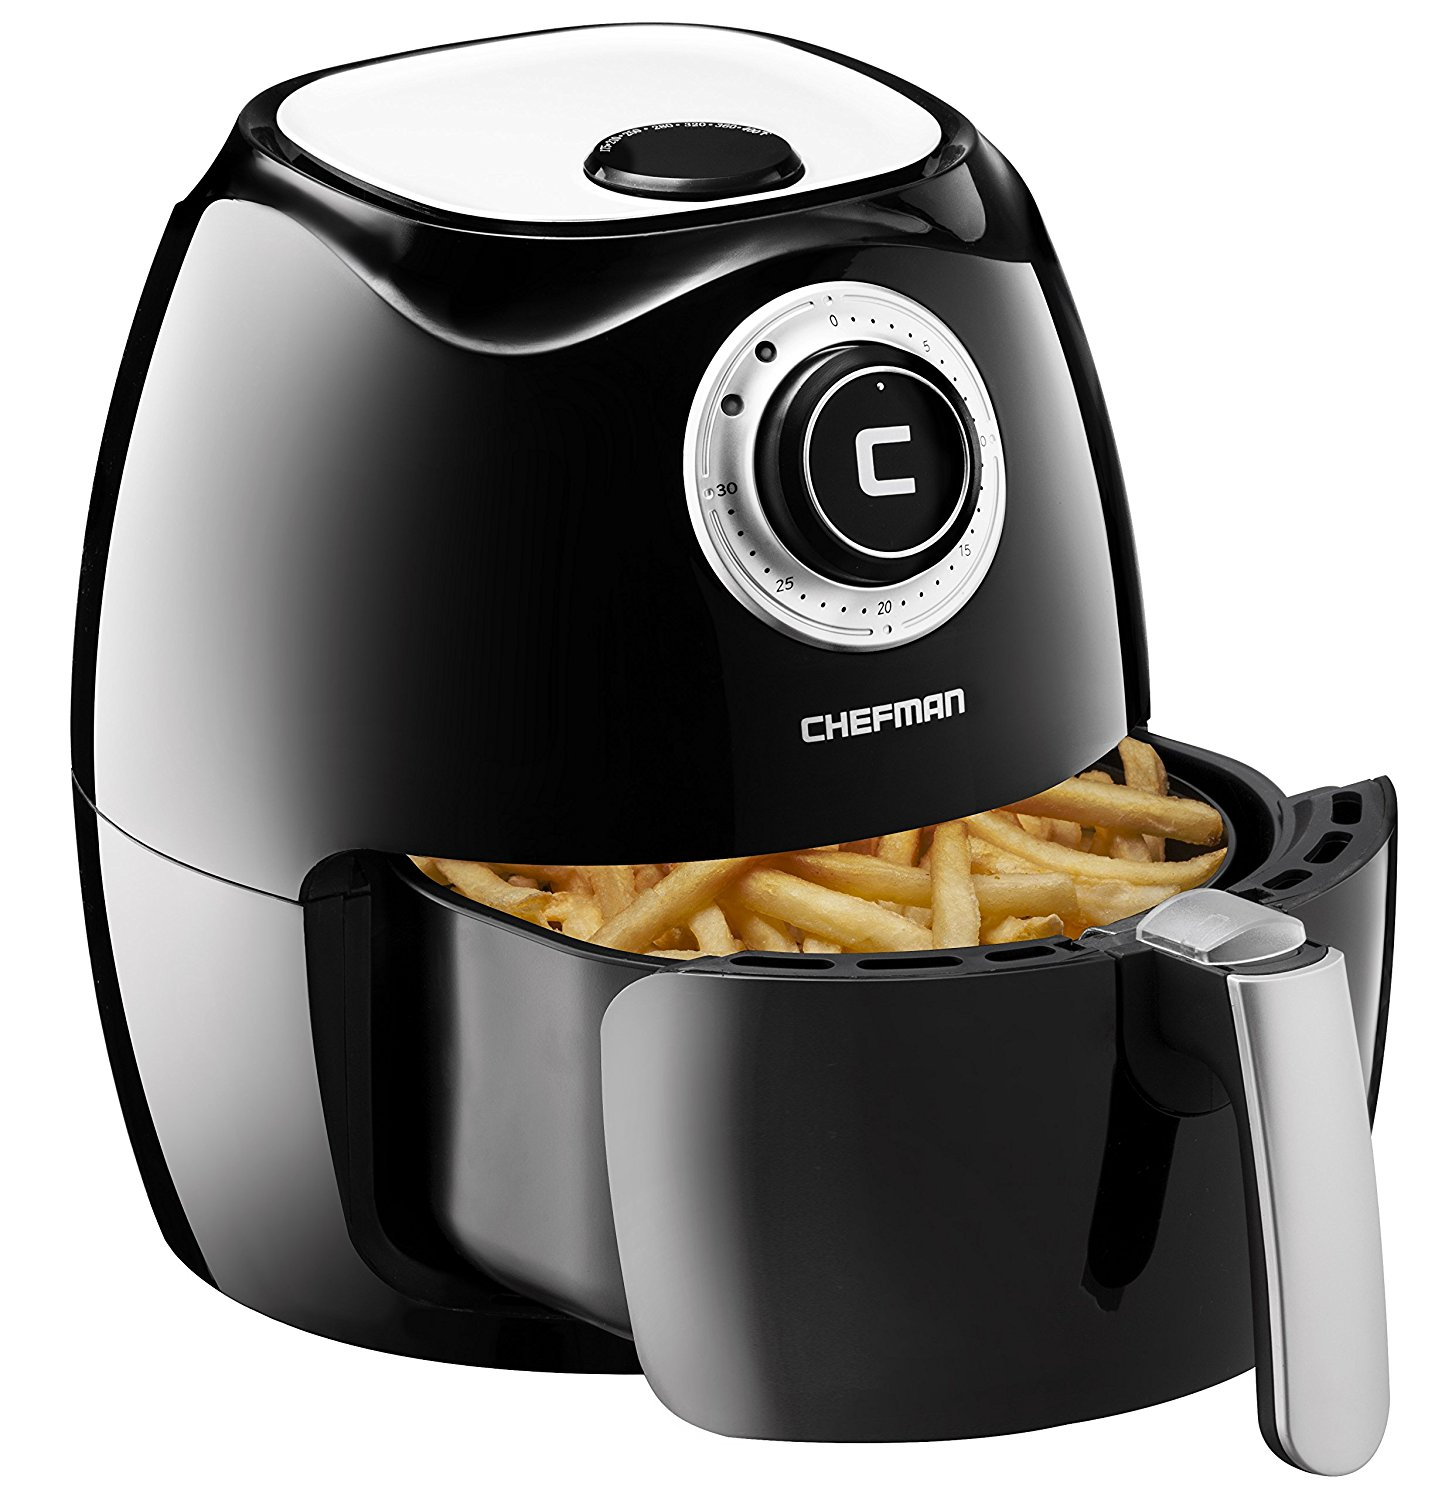 30% Off The Chefman Air Fryer With Adjustable Temperature